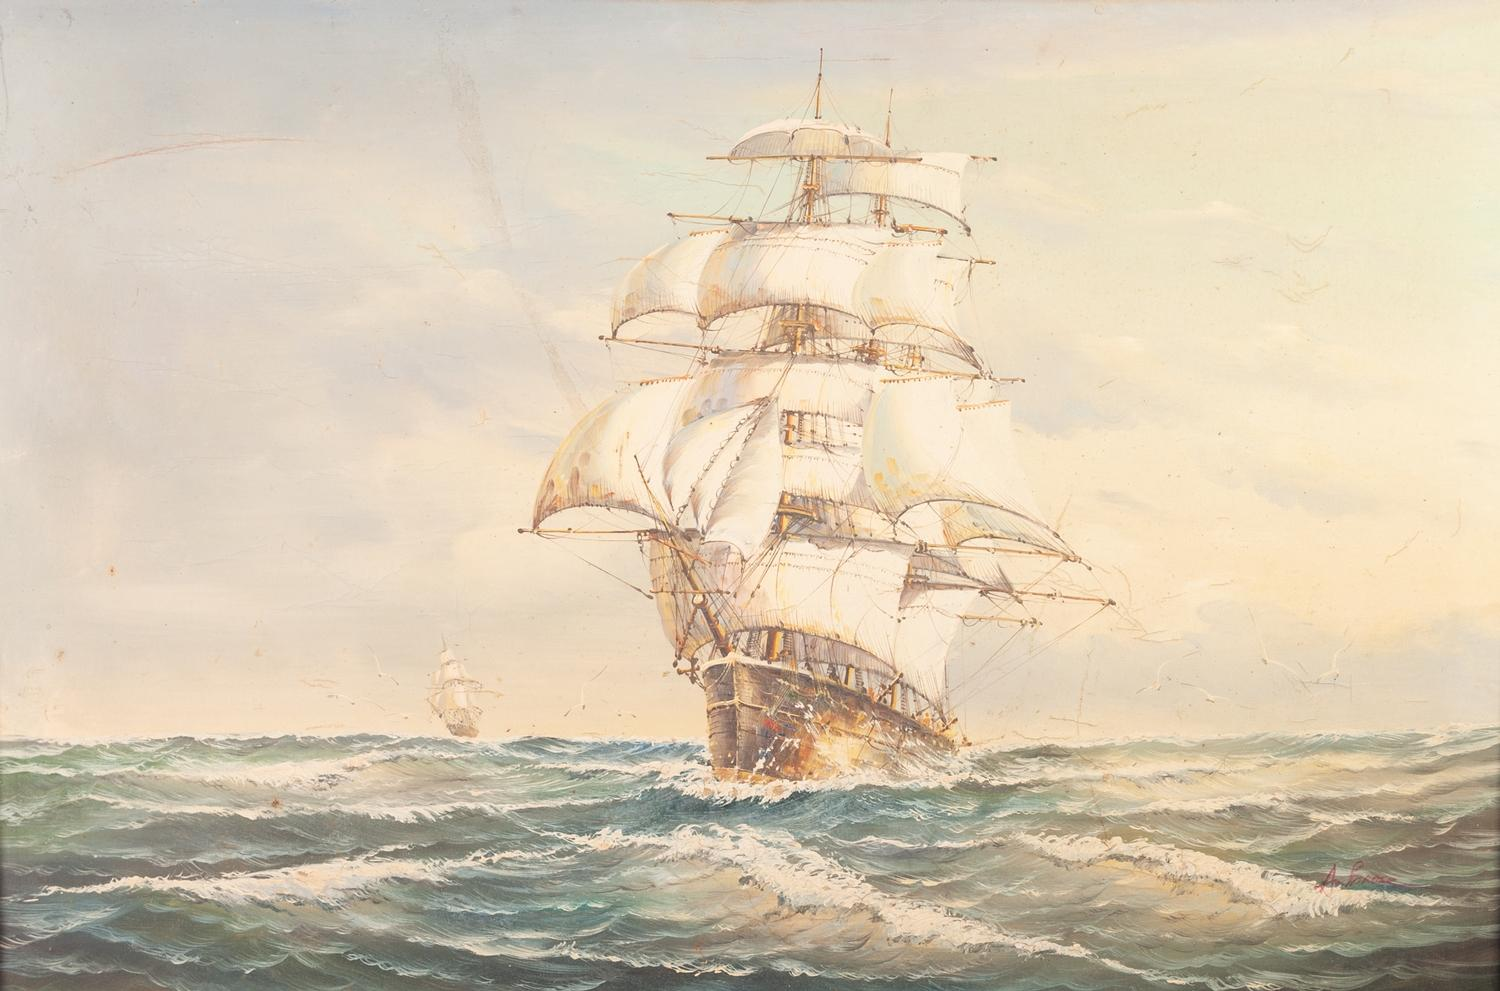 Lot 275 - Attributed to ROY CROSS OIL PAINTING ON CANVAS Two Tea Clippers racing under full sail on a windy